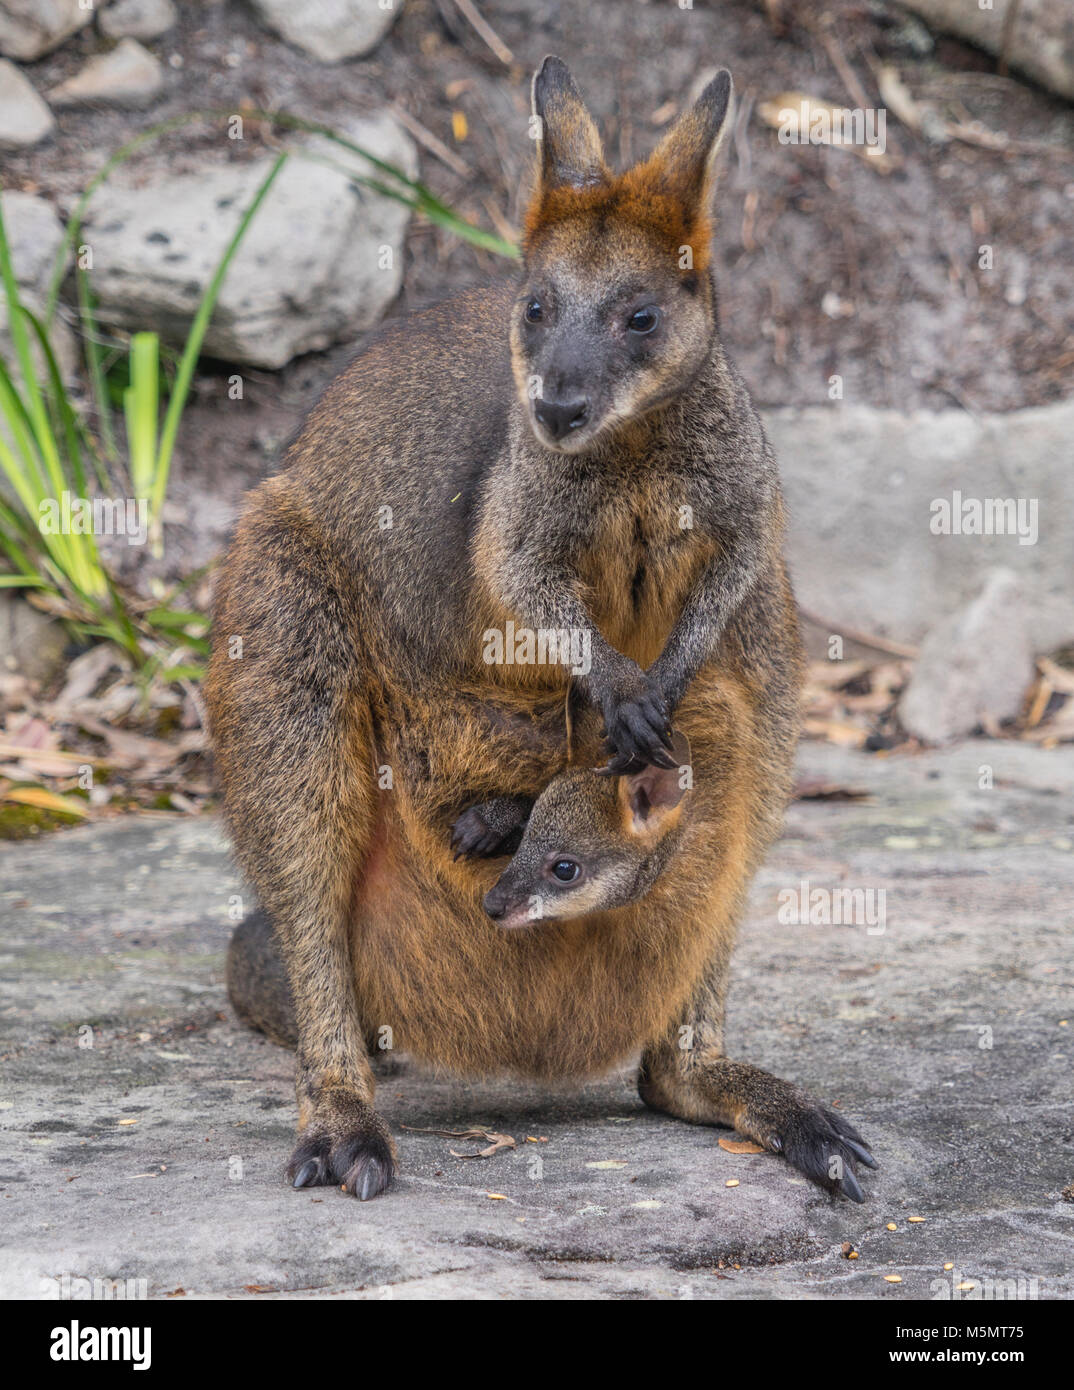 Swamp Wallaby mum with joey, Wallabia bicolor - Stock Image